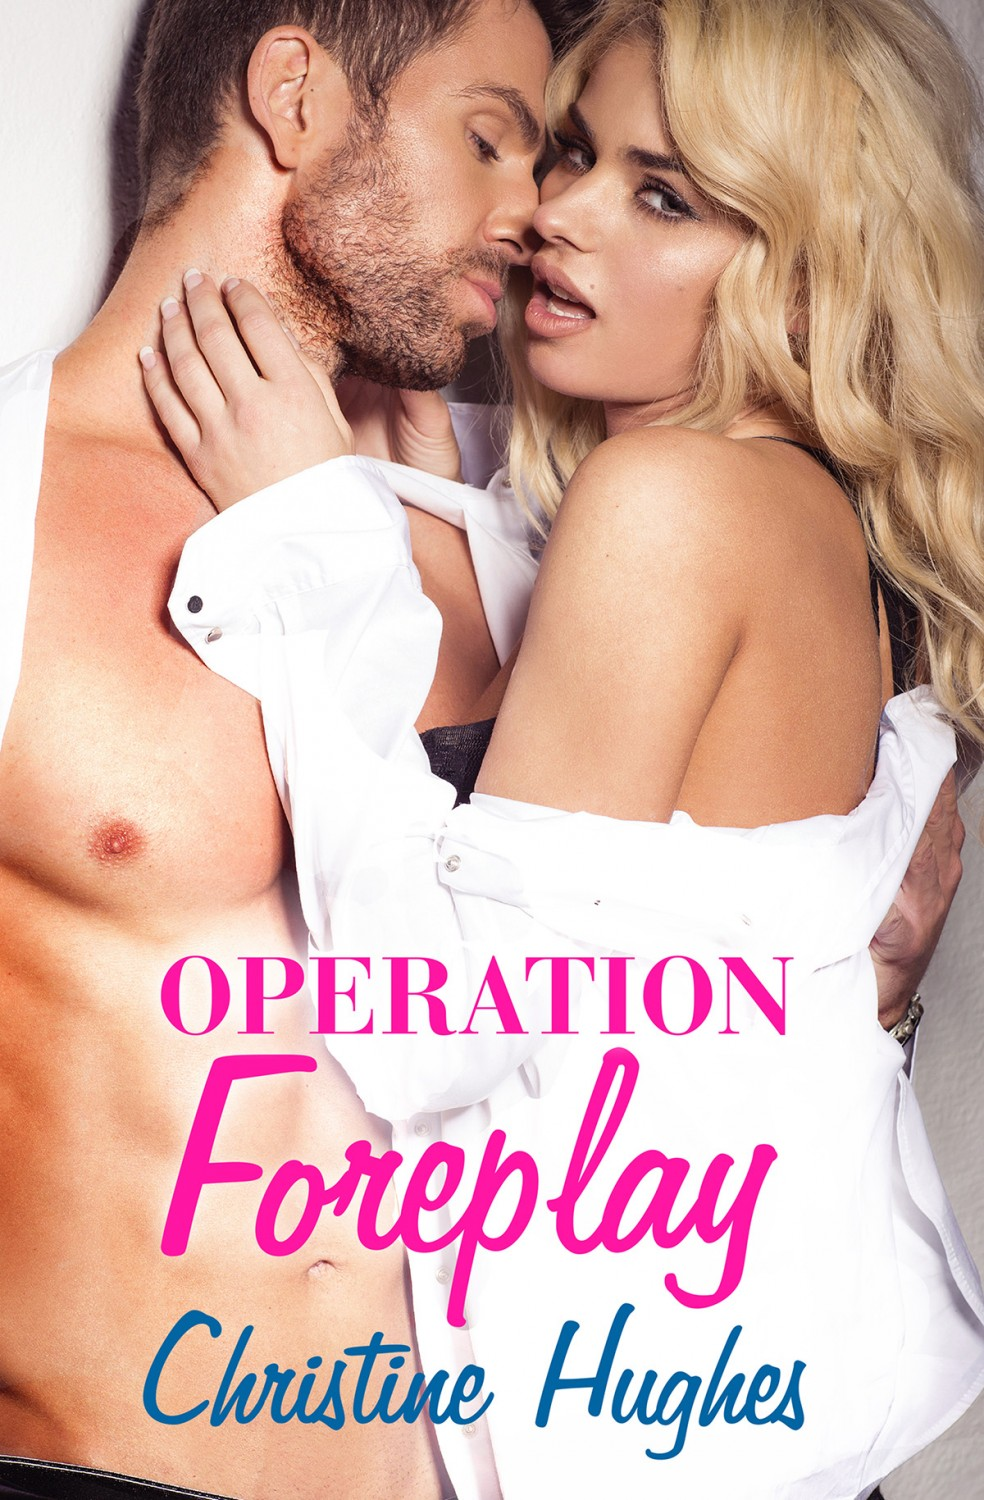 Hughes__OperationForeplay_ebook